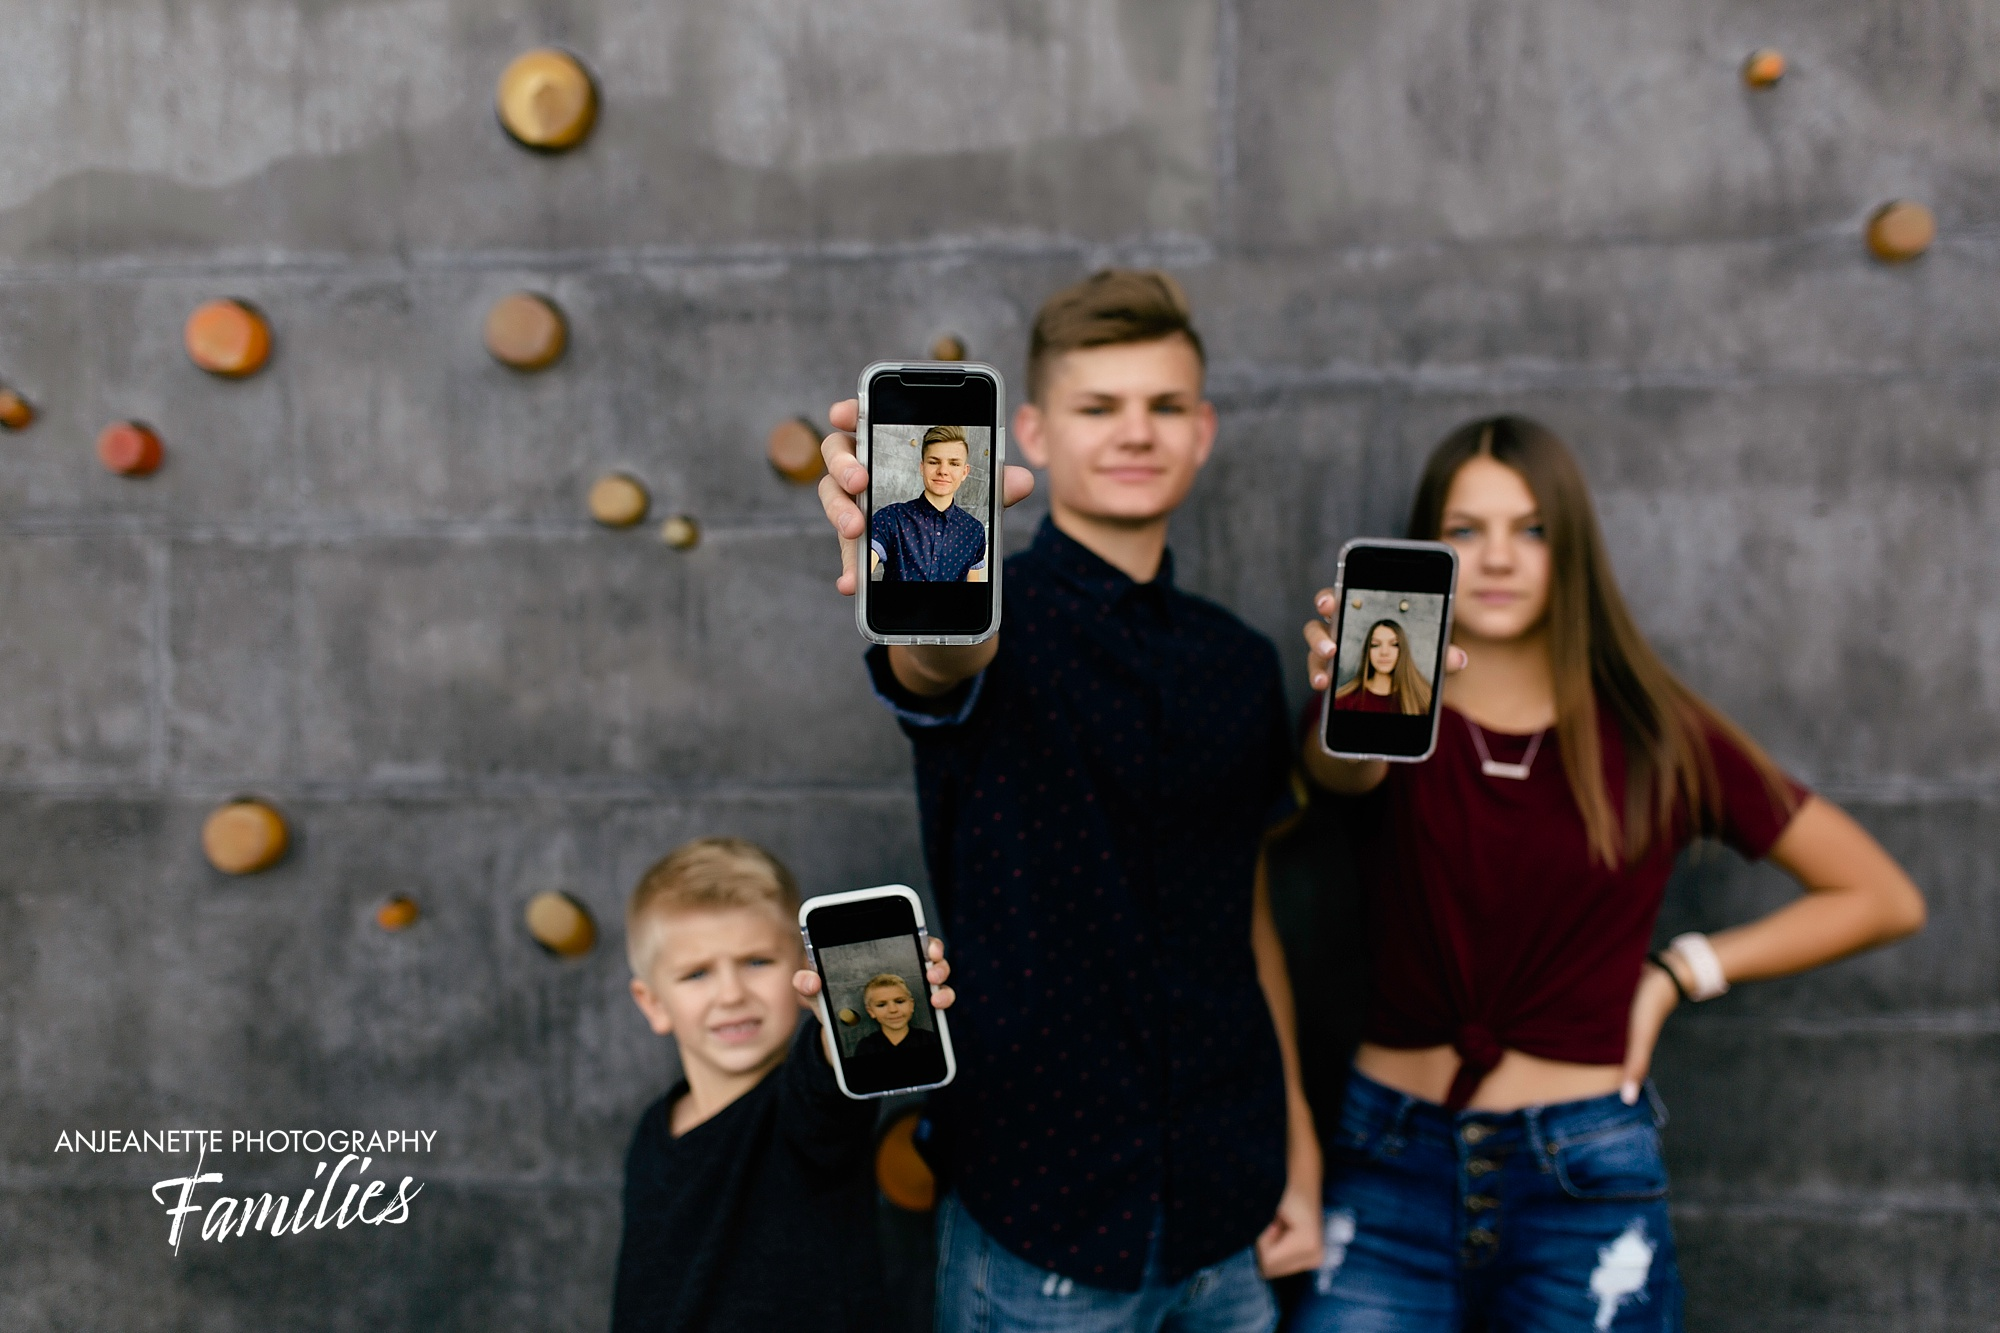 Best family picture places near Phoenix Arizona for children's pictures Anjeanette.Photography peoria az